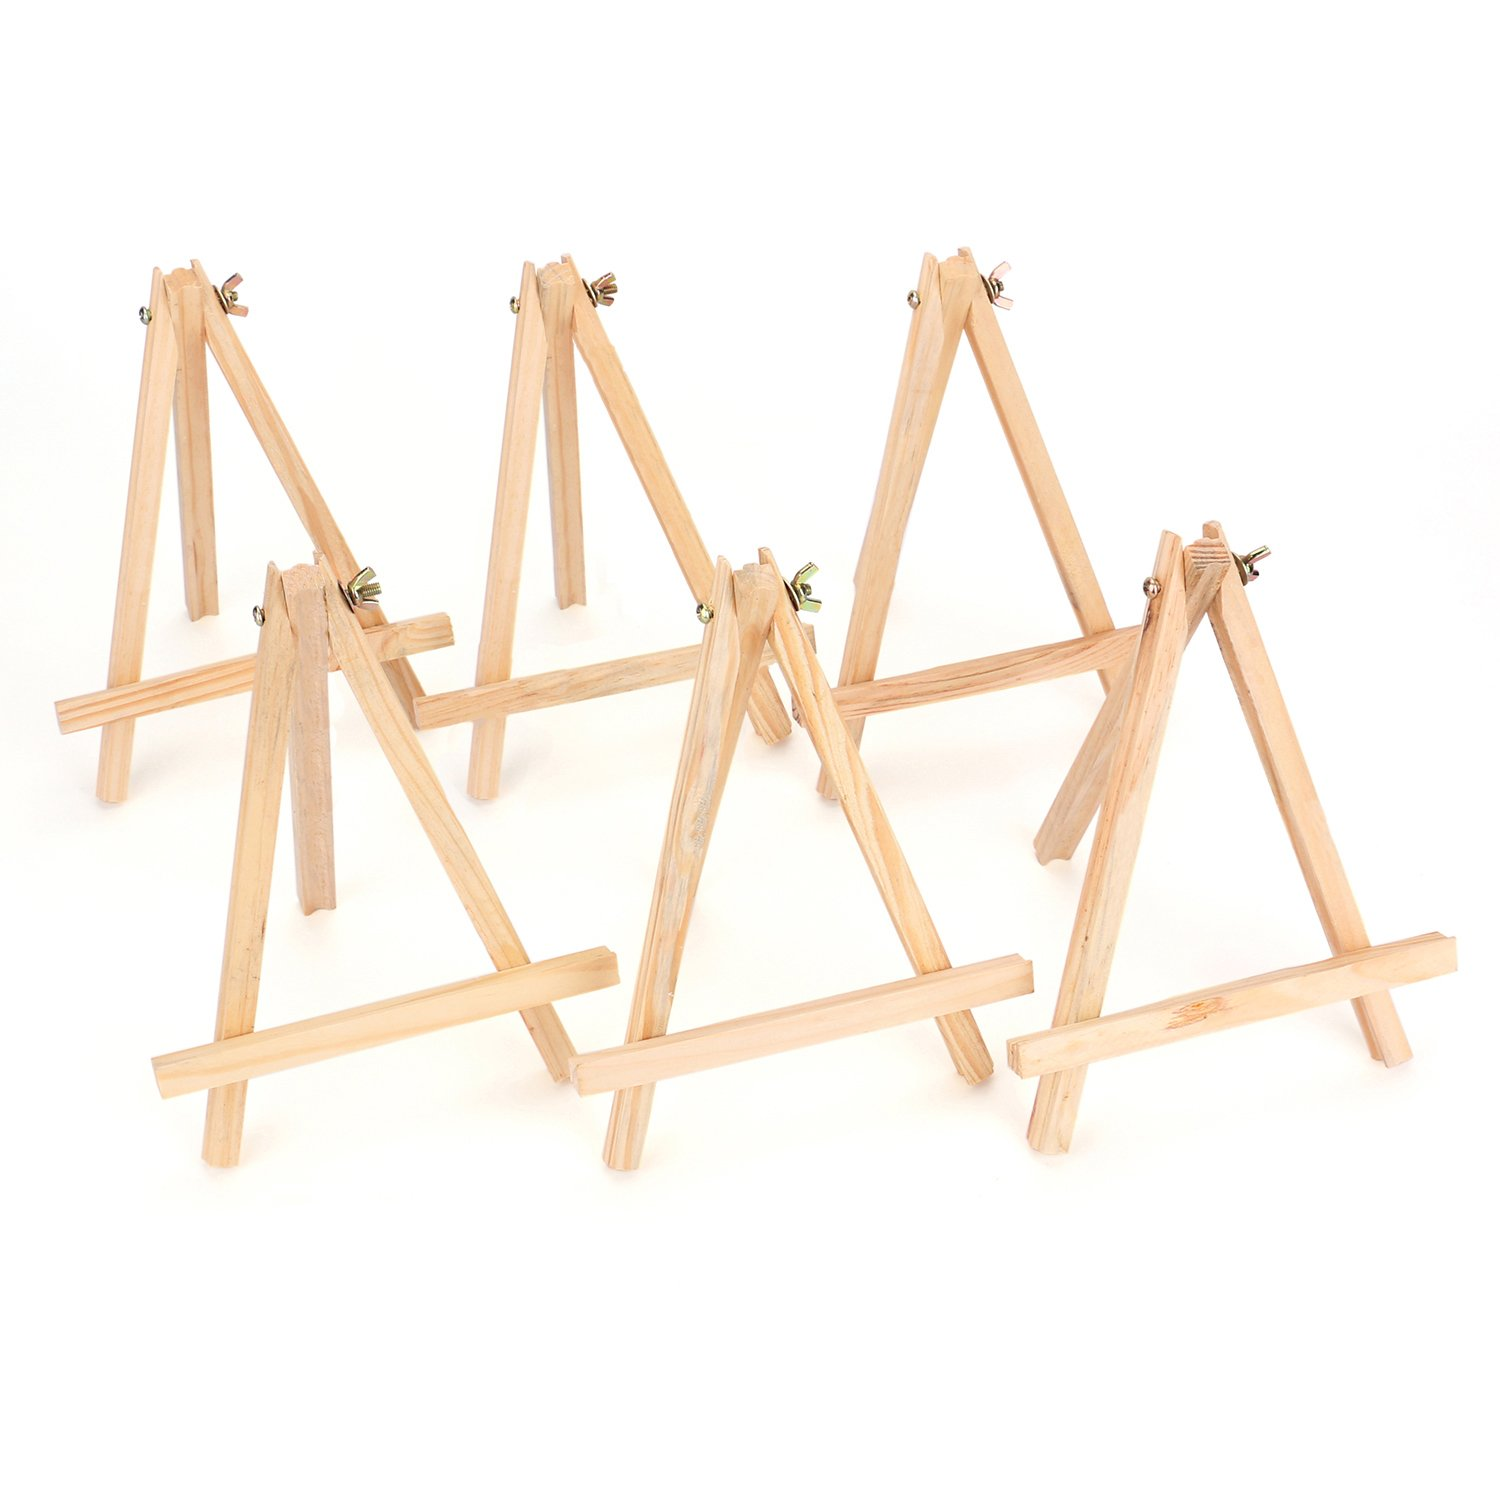 Tosnail 9'' Tall Natural Pine Wood Tripod Easel Photo Painting Display Portable Tripod Holder Stand, 6 Pack by Tosnail